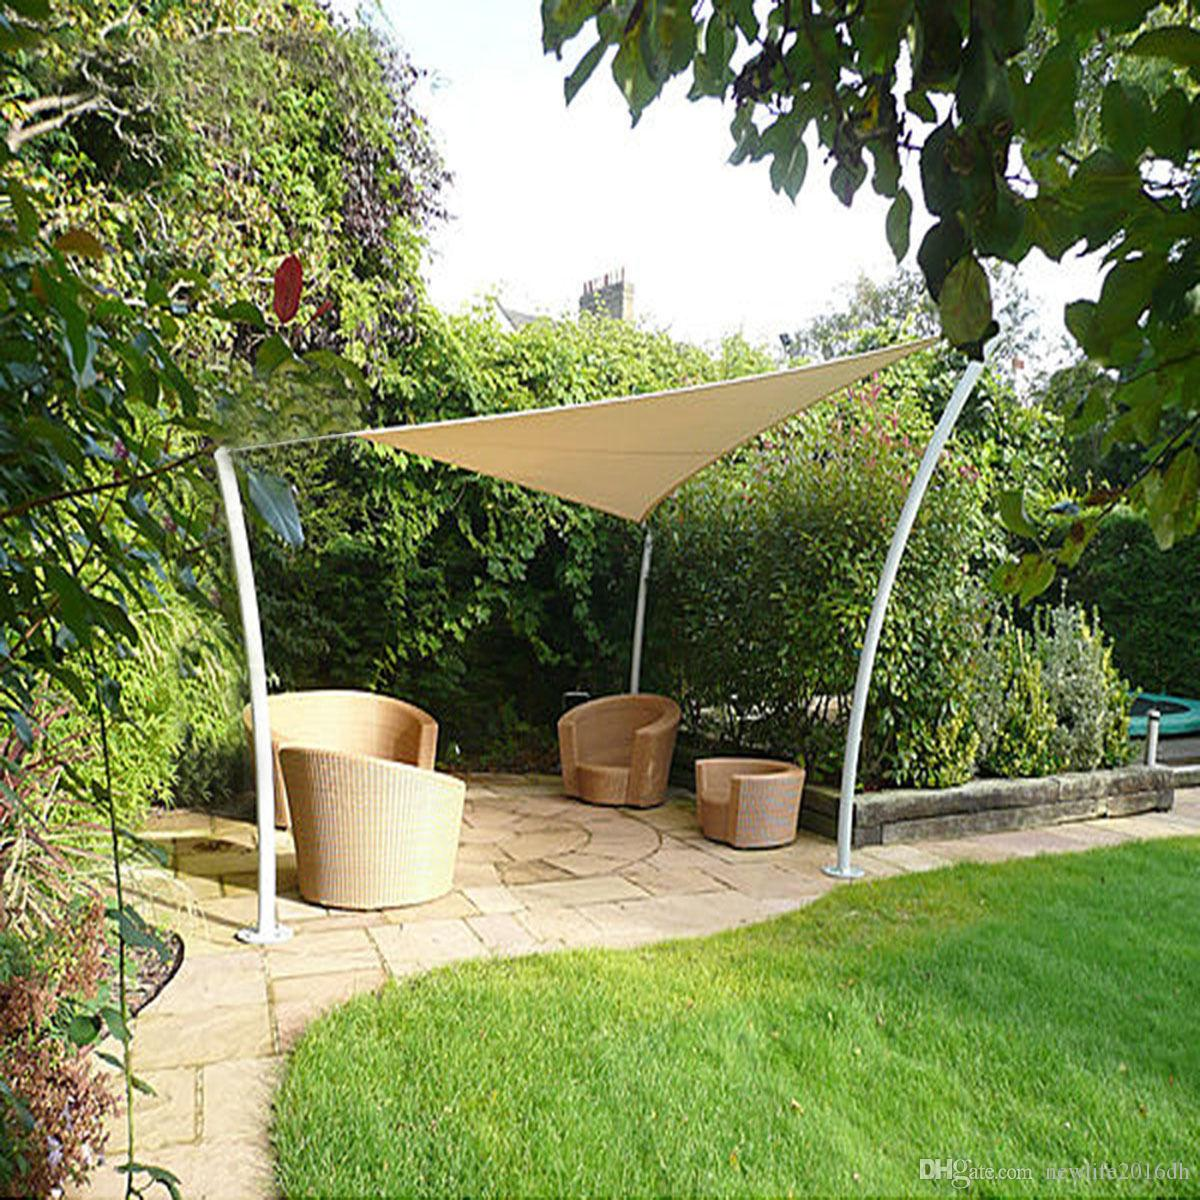 11 8 Triangle Sun Shade Sail Uv Top Outdoor Canopy Patio Lawn Cover